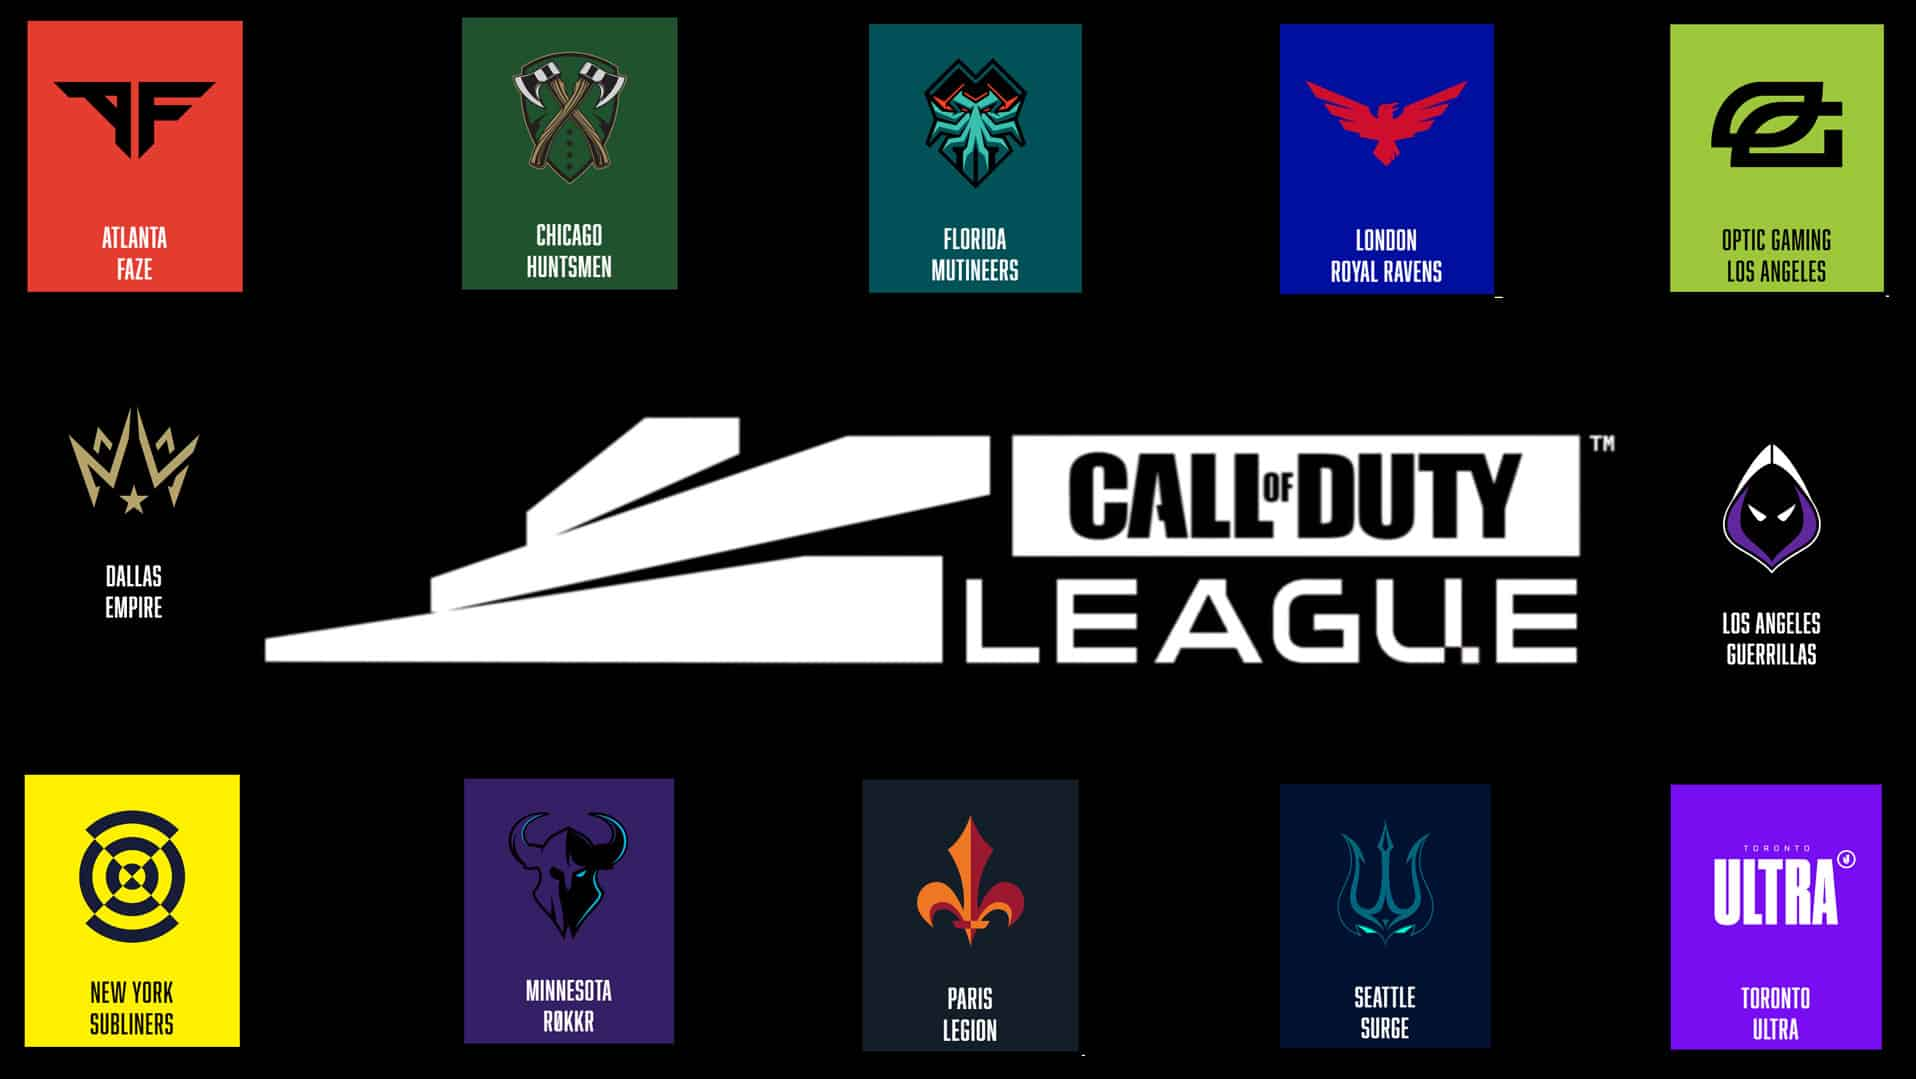 A Guide To The Call Of Duty League - Everything You Need To Know In The New CDL